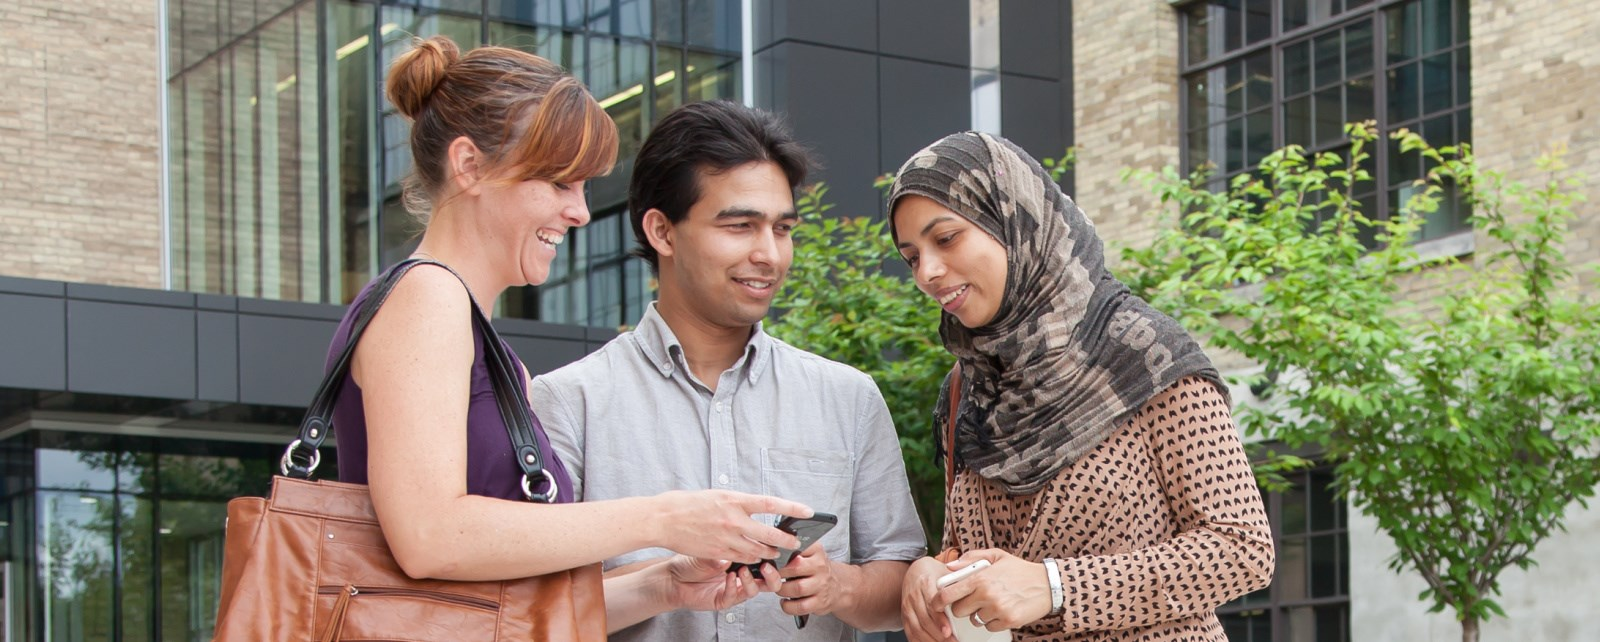 Image of young adults looking at mobile phone